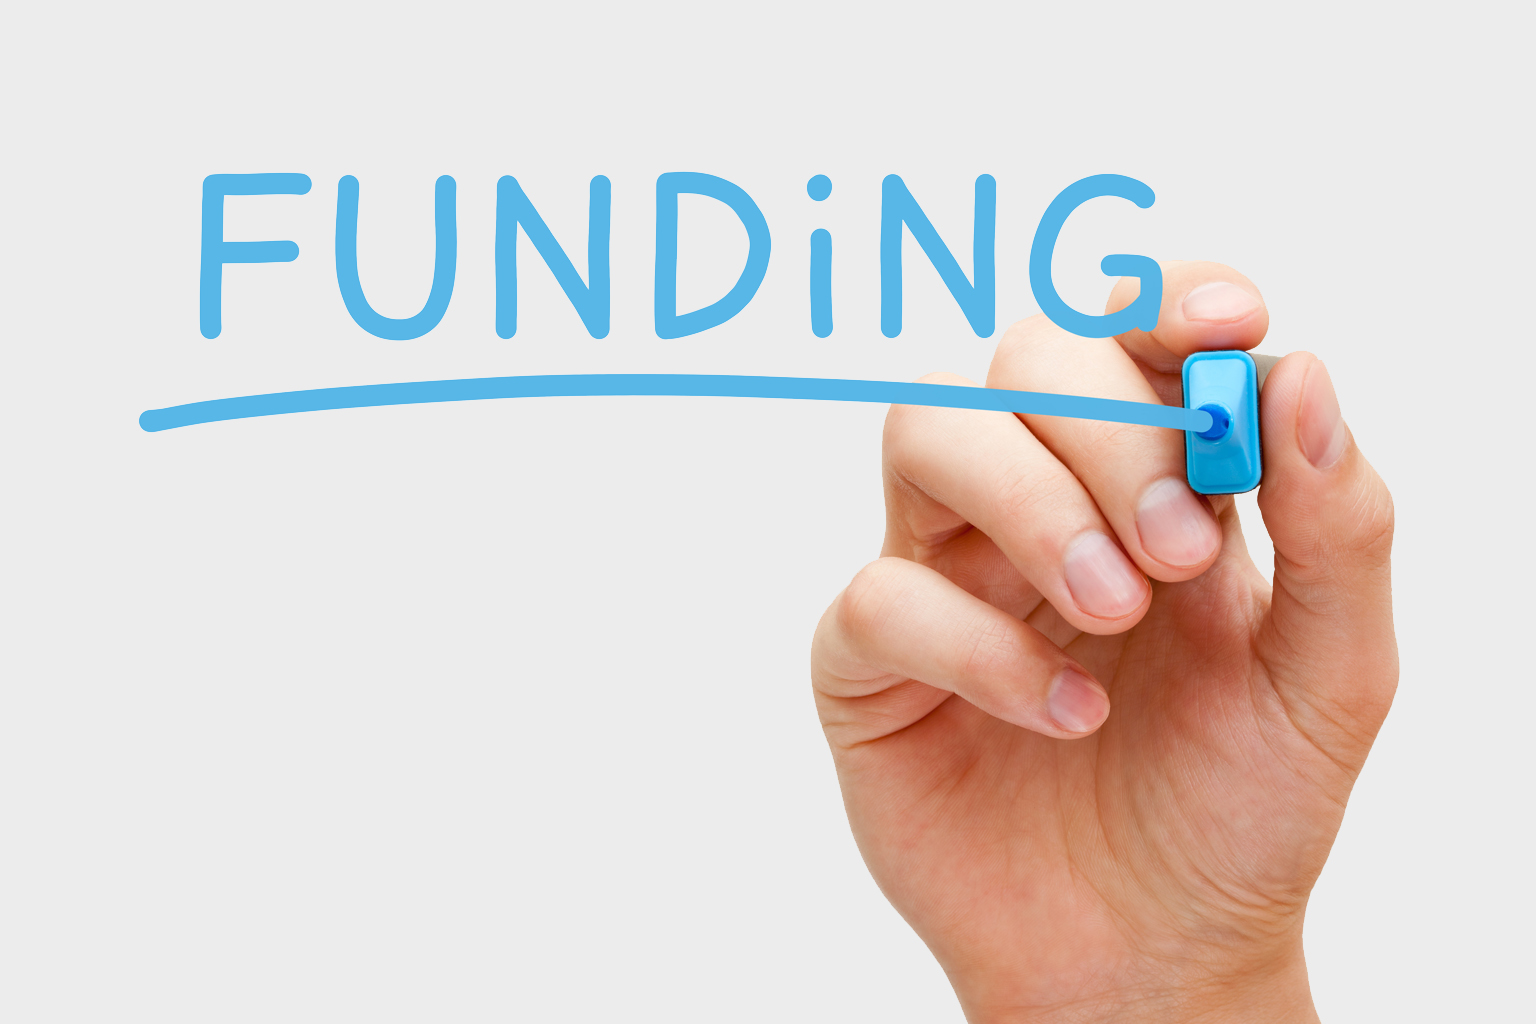 A hand writing funding in blue marker